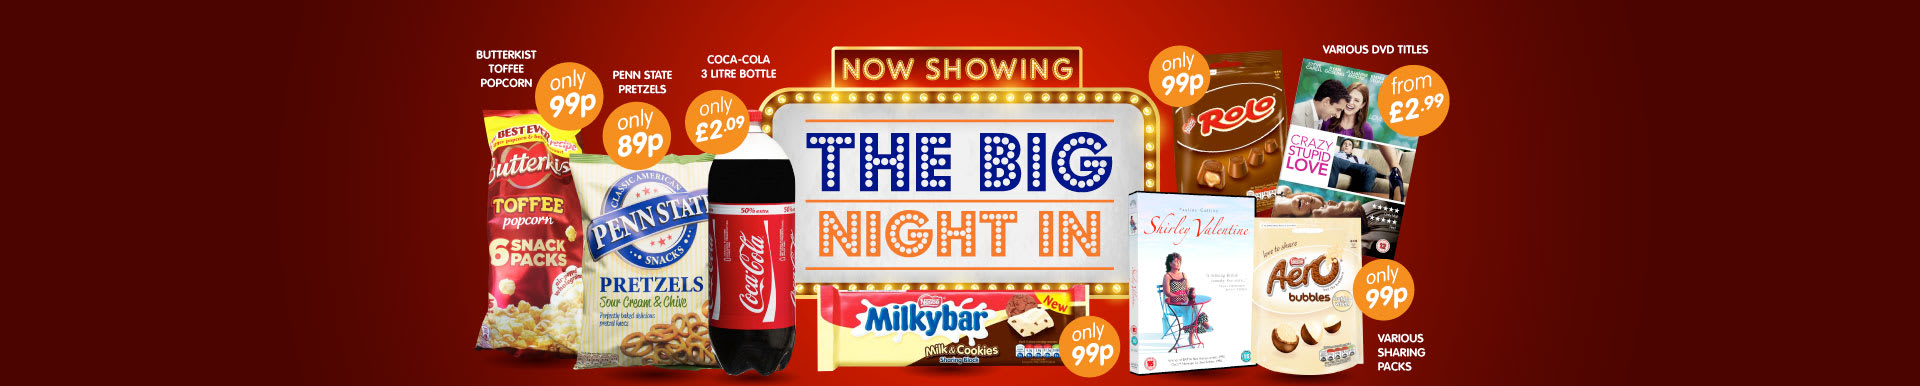 Enjoy a Big Night in with B&M. Big selection of DVDs, Chocolates, Snacks and drinks available at low prices in-store.